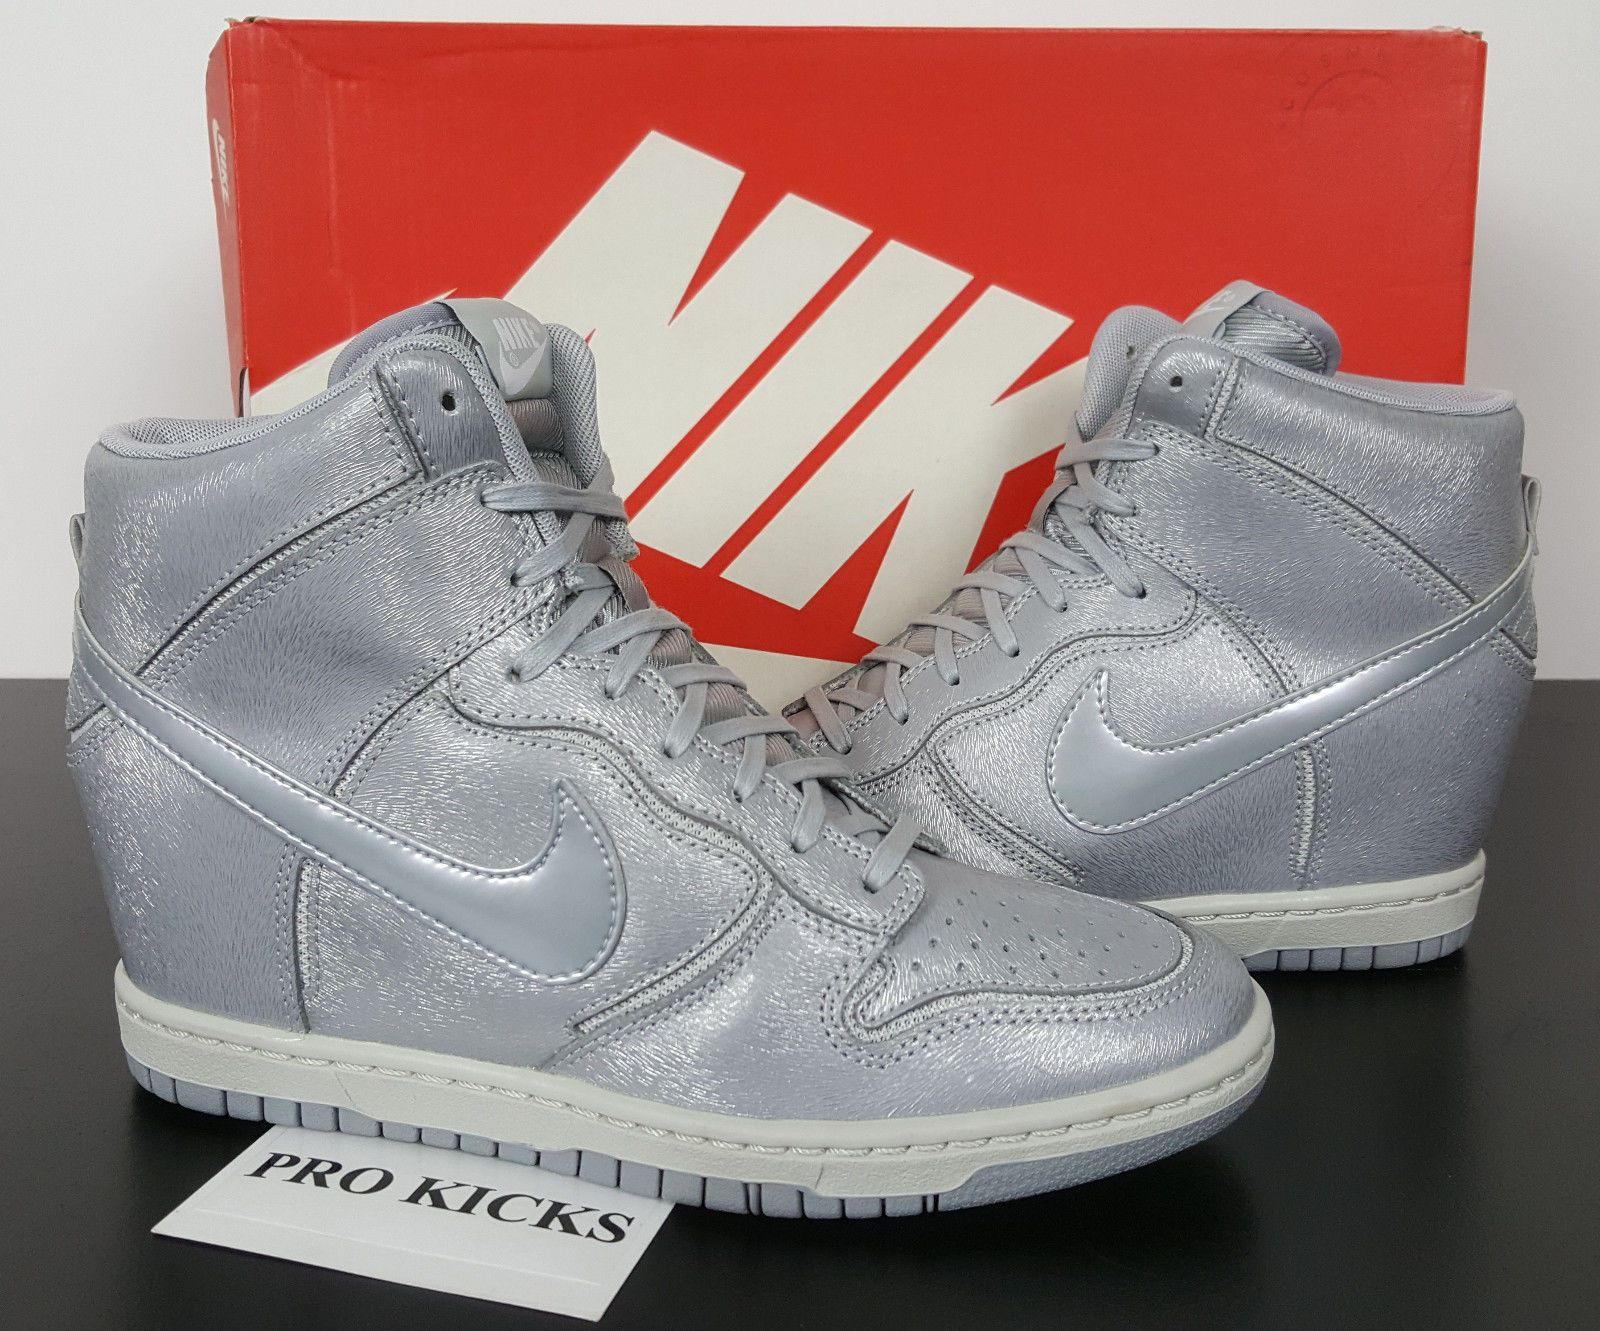 WOMENS NIKE DUNK SKY HI CUT OUT PREMIUM WOLF GREY RARE NEW 644411-001 (